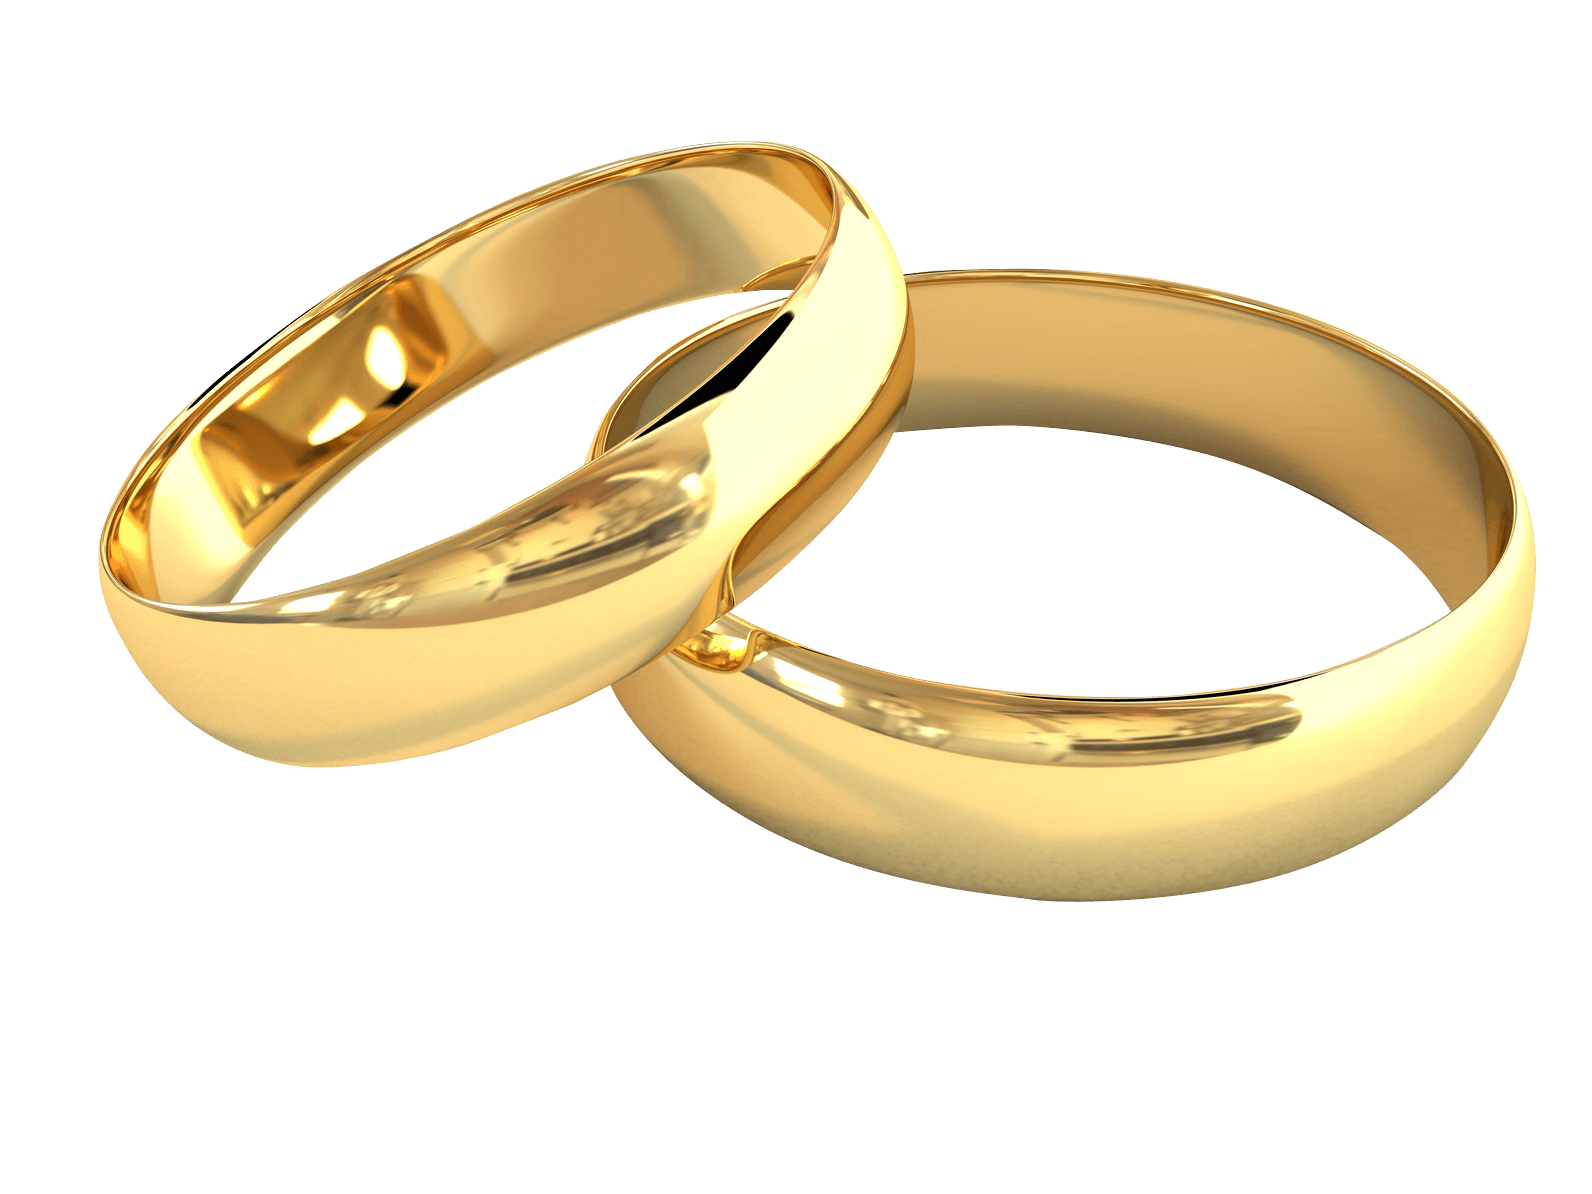 wedding rings png 10 free Cliparts | Download images on ...